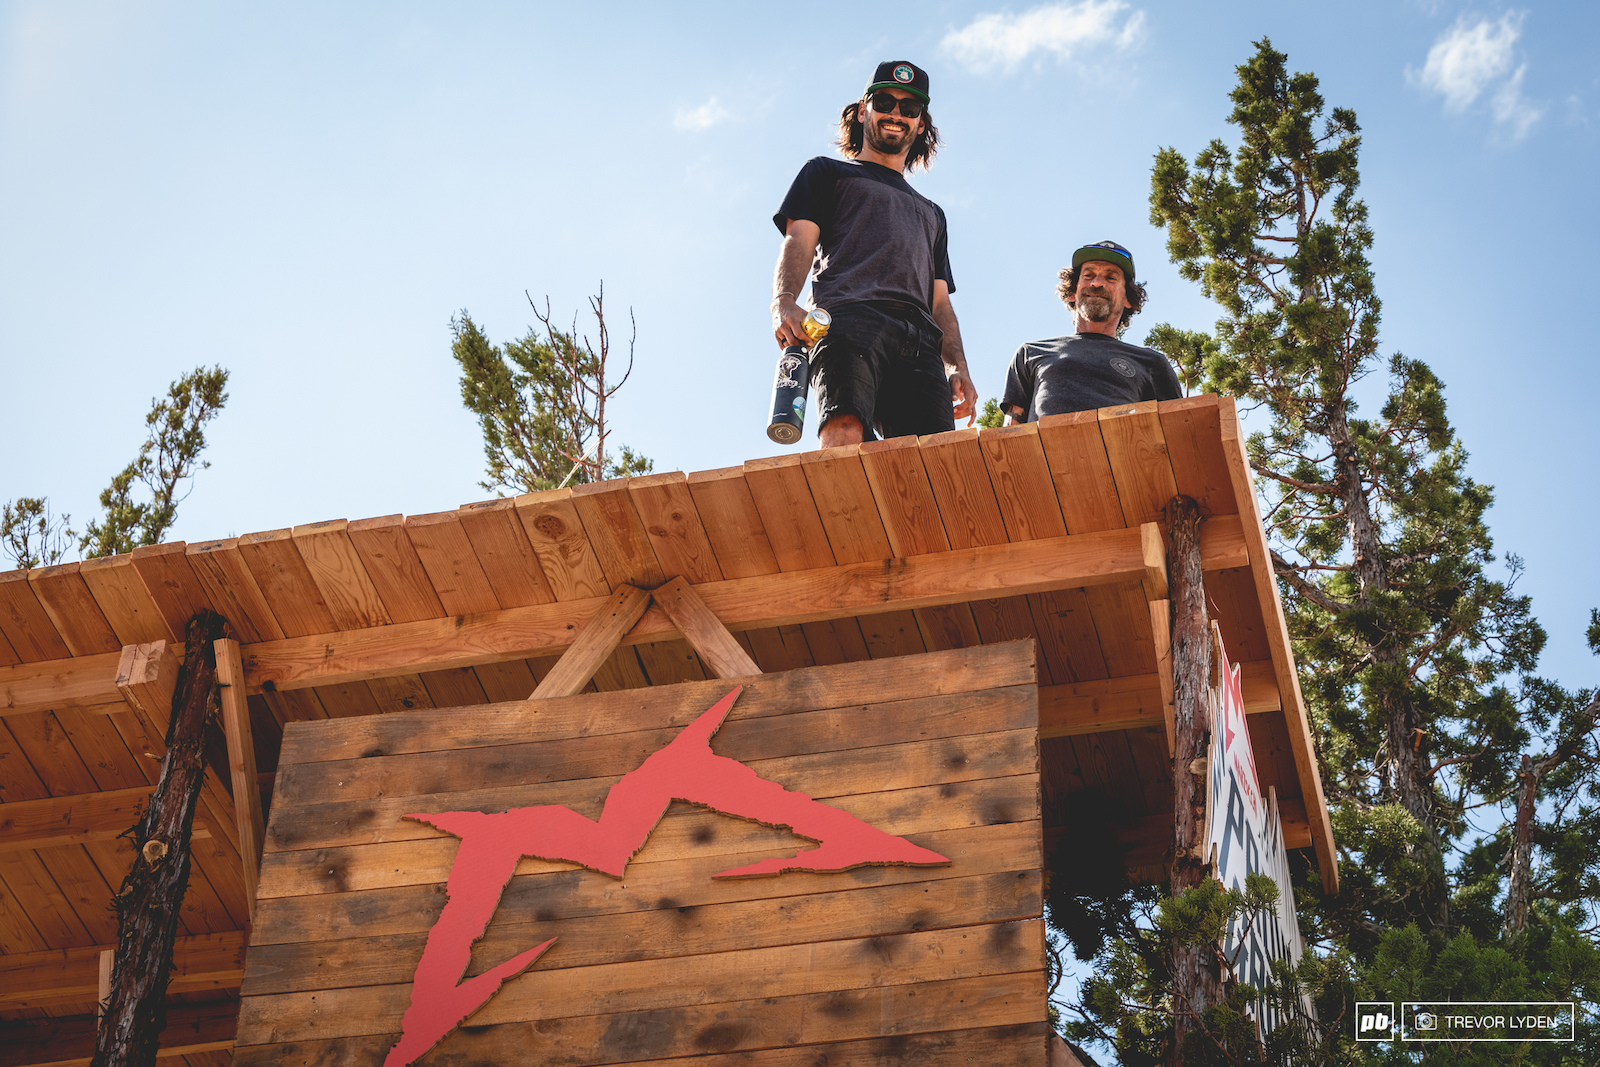 KJ and Spangler on the final drop judges tower.